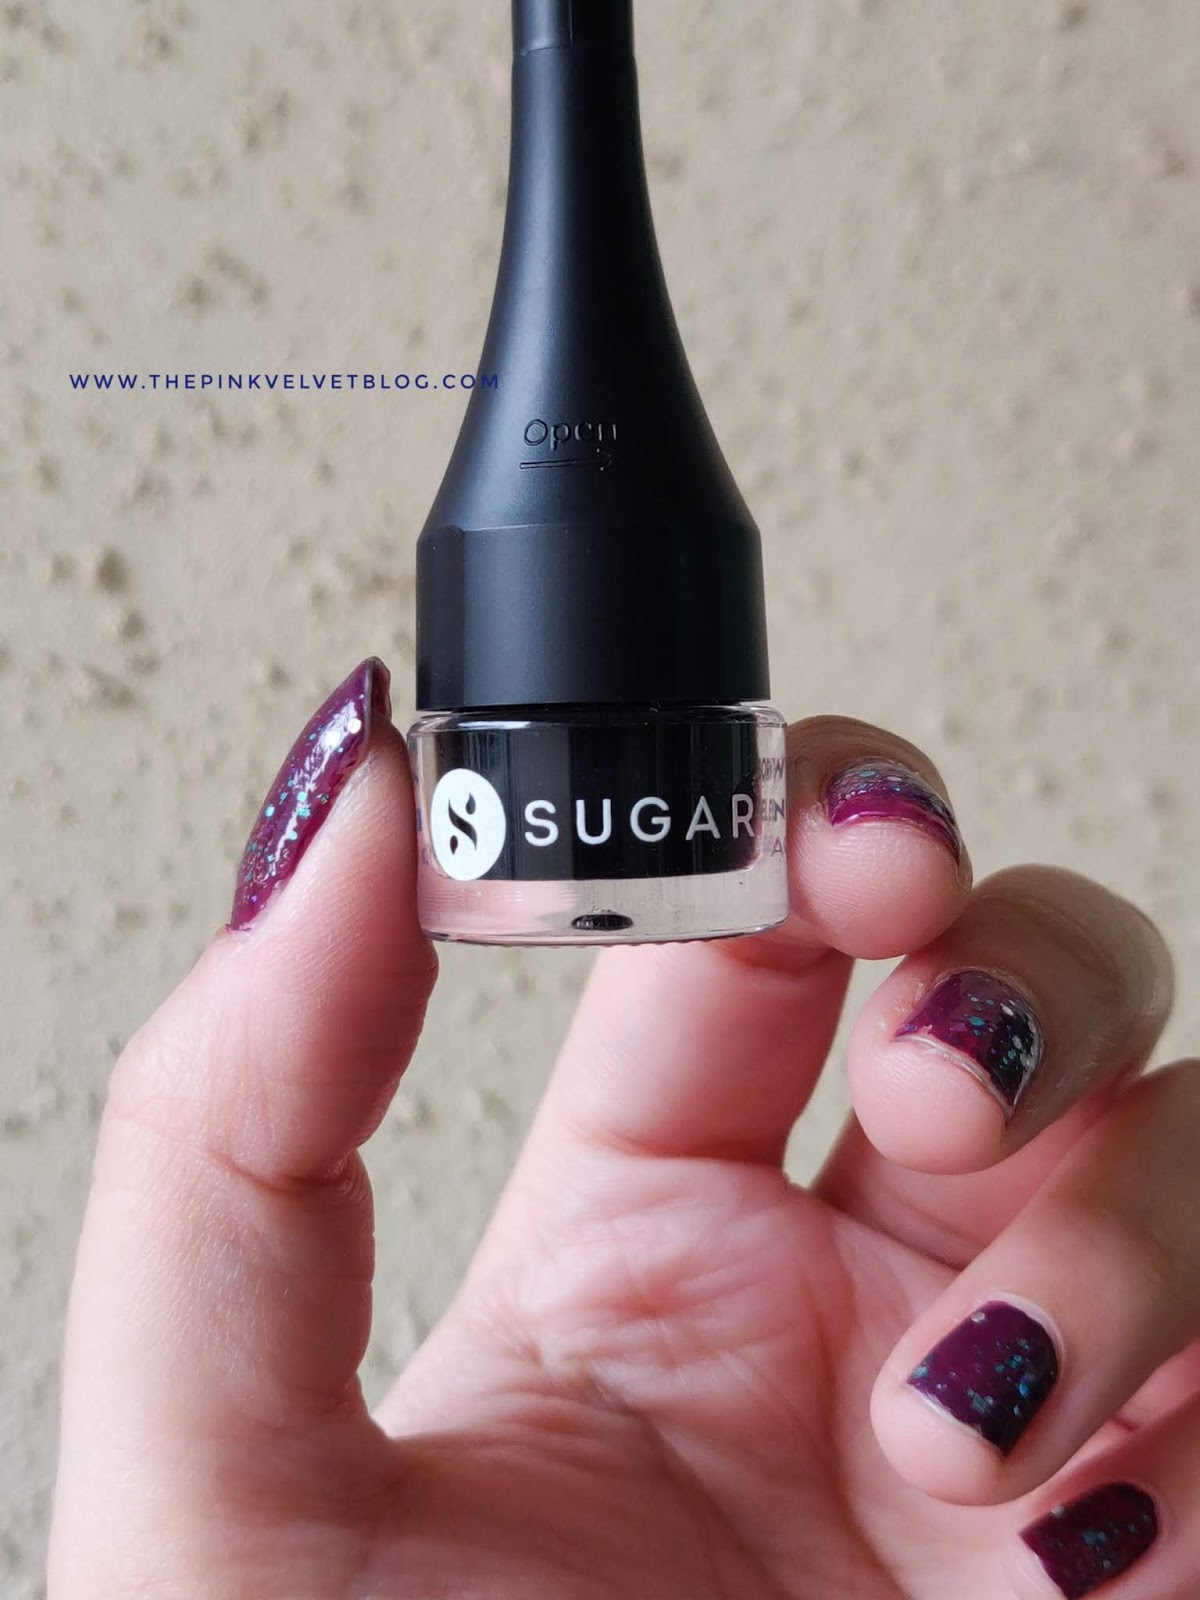 SUGAR Born to Wing Gel Eyeliner - Review and Swatches (All 5 Shades) - Blackmagic Woman